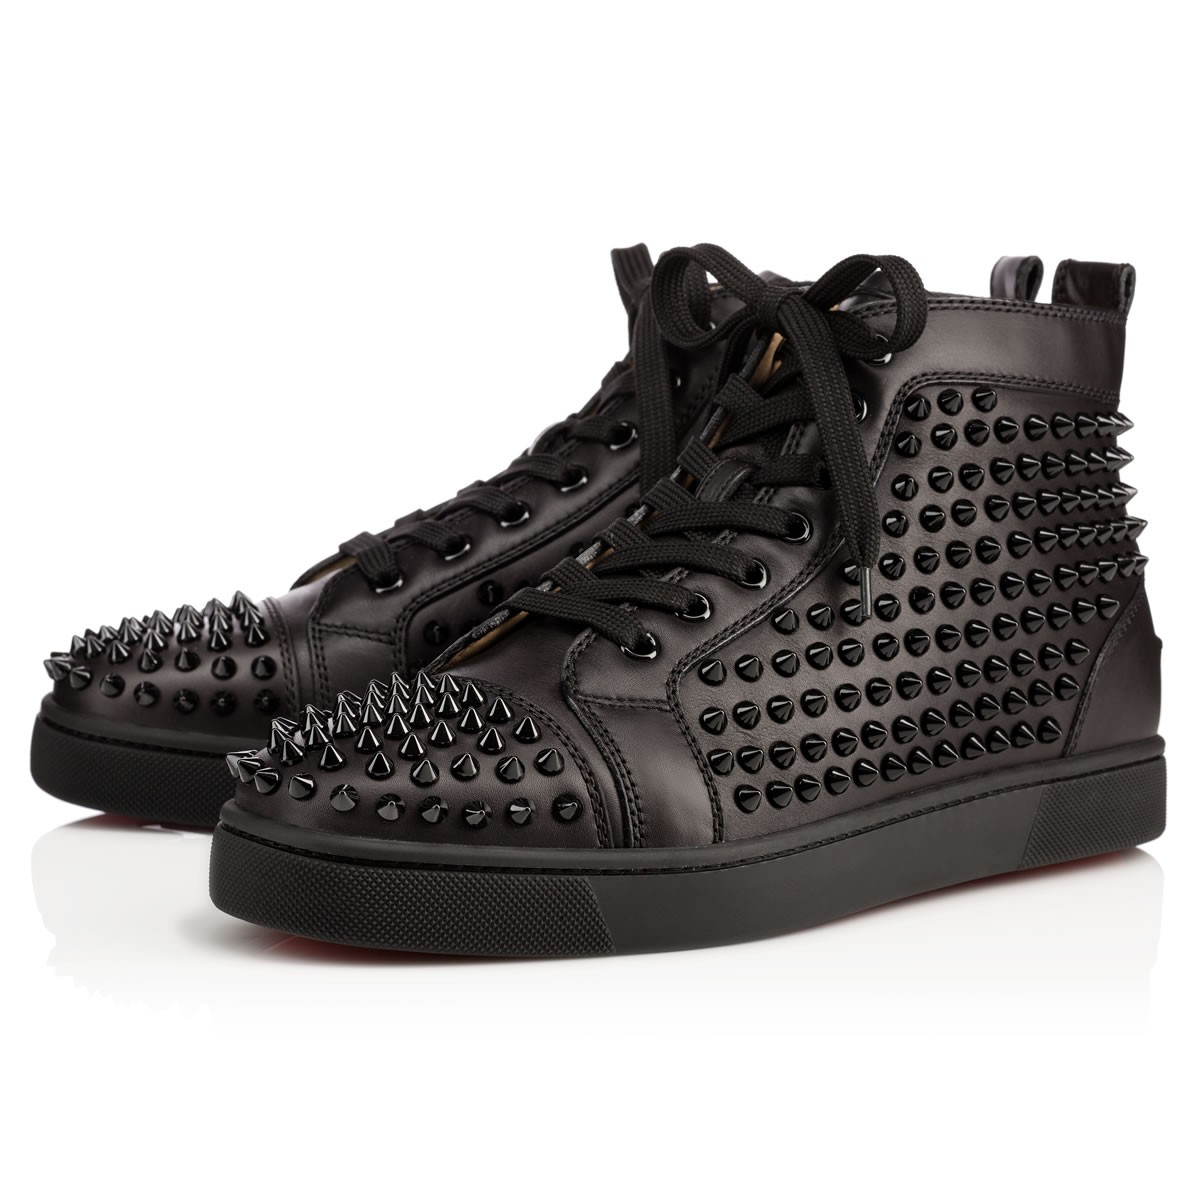 christian louboutin black shoes with spikes